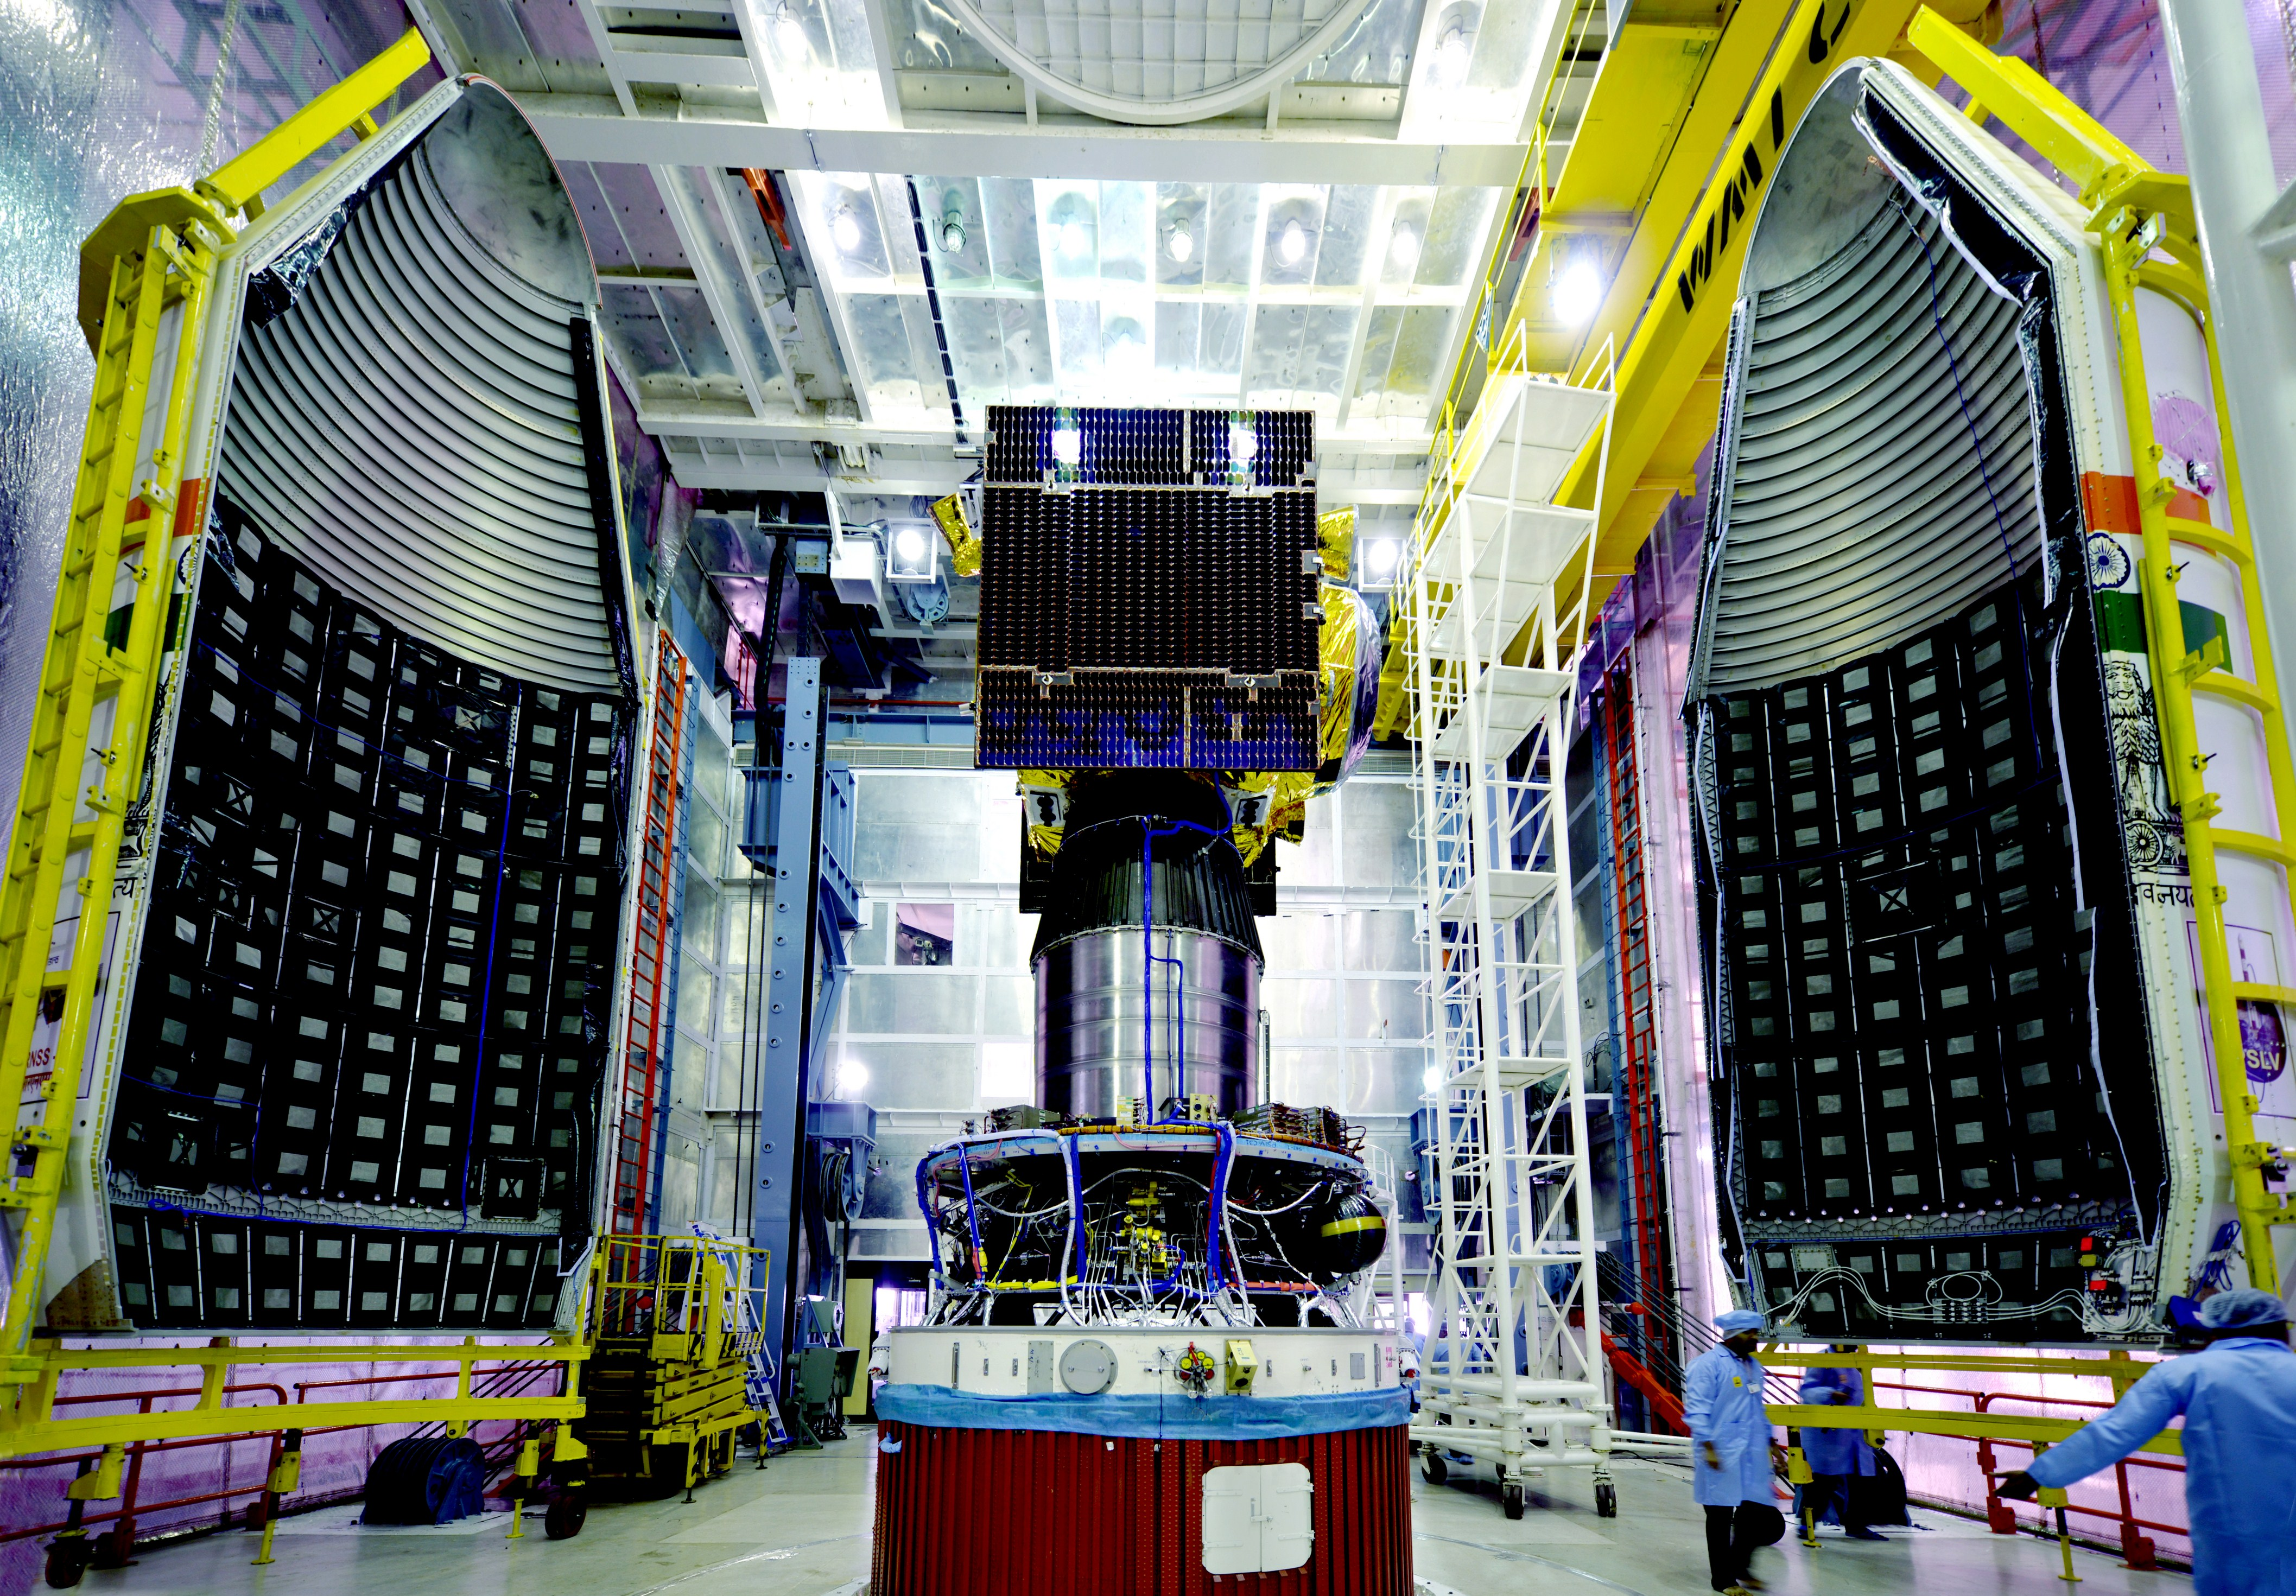 The IRNSS 1E satellite is pictured before its encapsulation inside the PSLV's payload fairing. Credit: ISRO